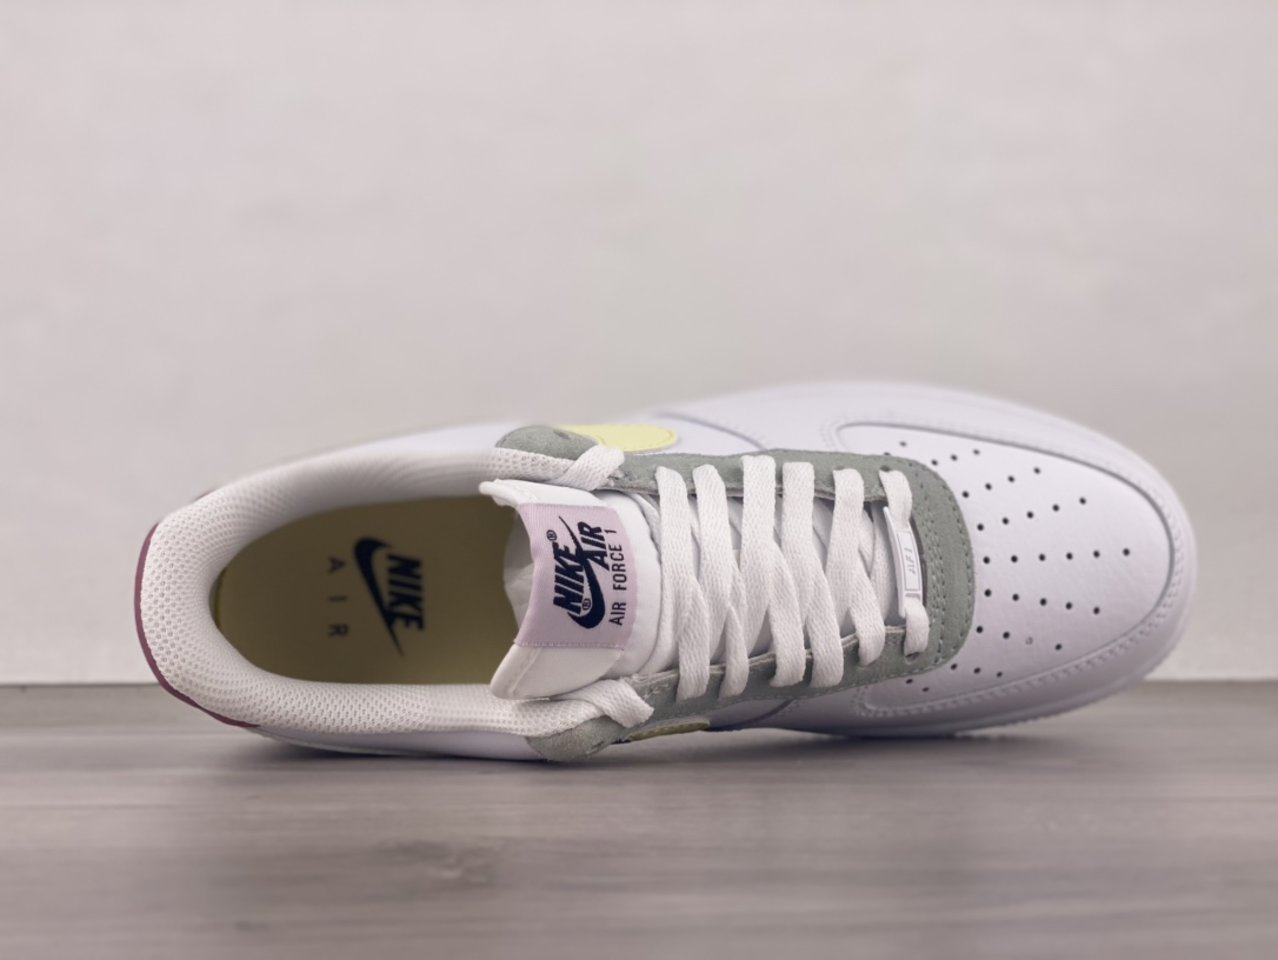 Cheap Nike Air Force 1 Low Muted Pastels White Pink DN4930-100 shoelace